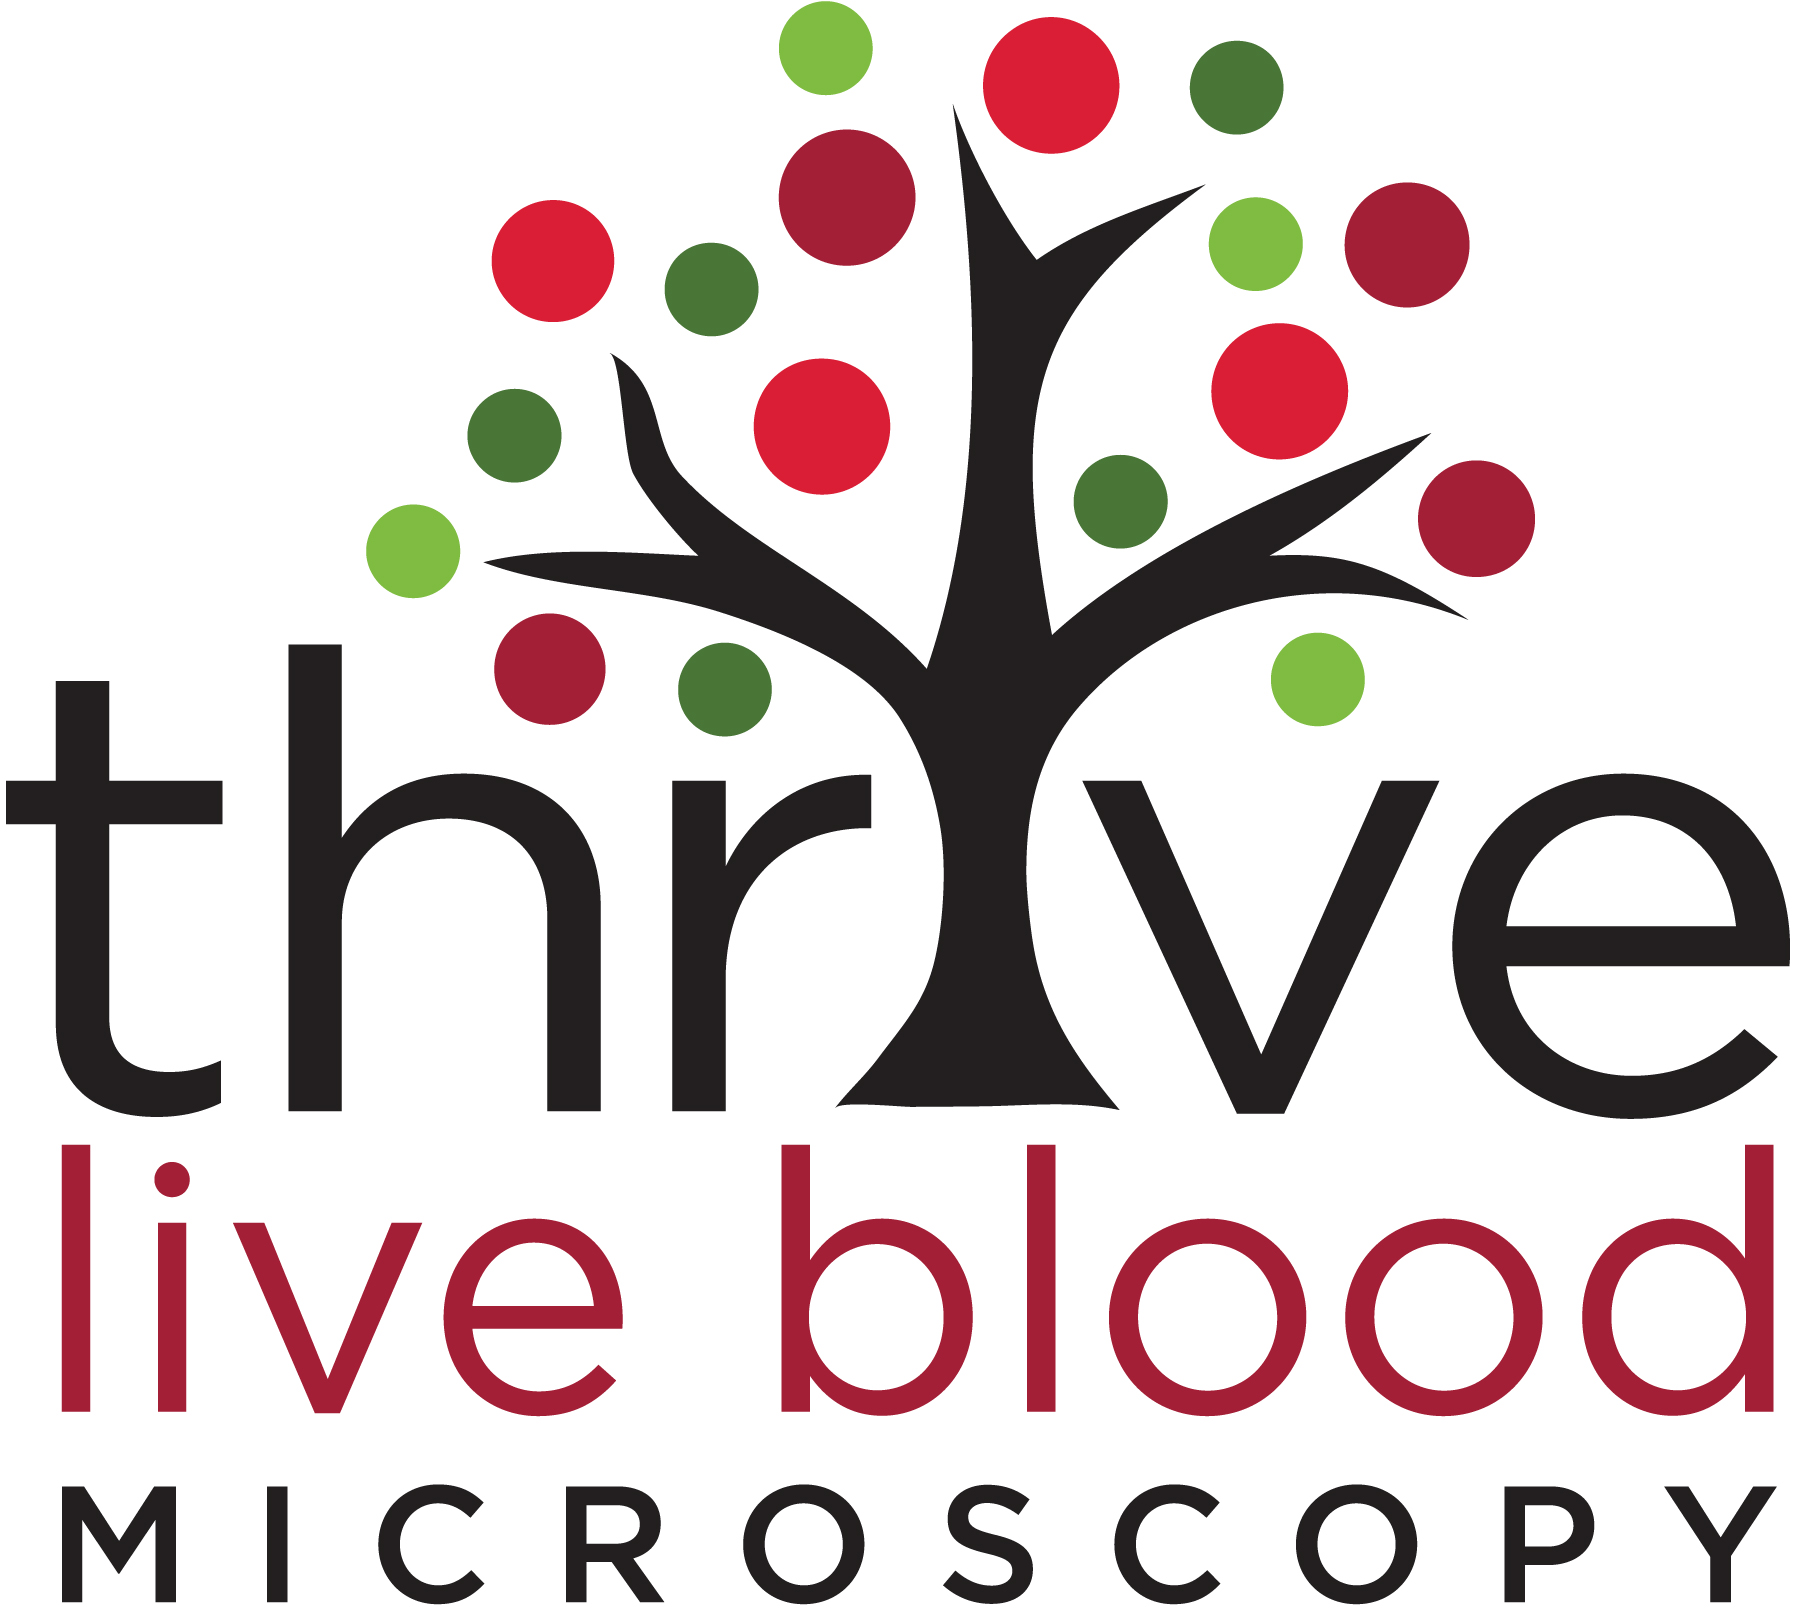 Thrive Live Blood Microscopy